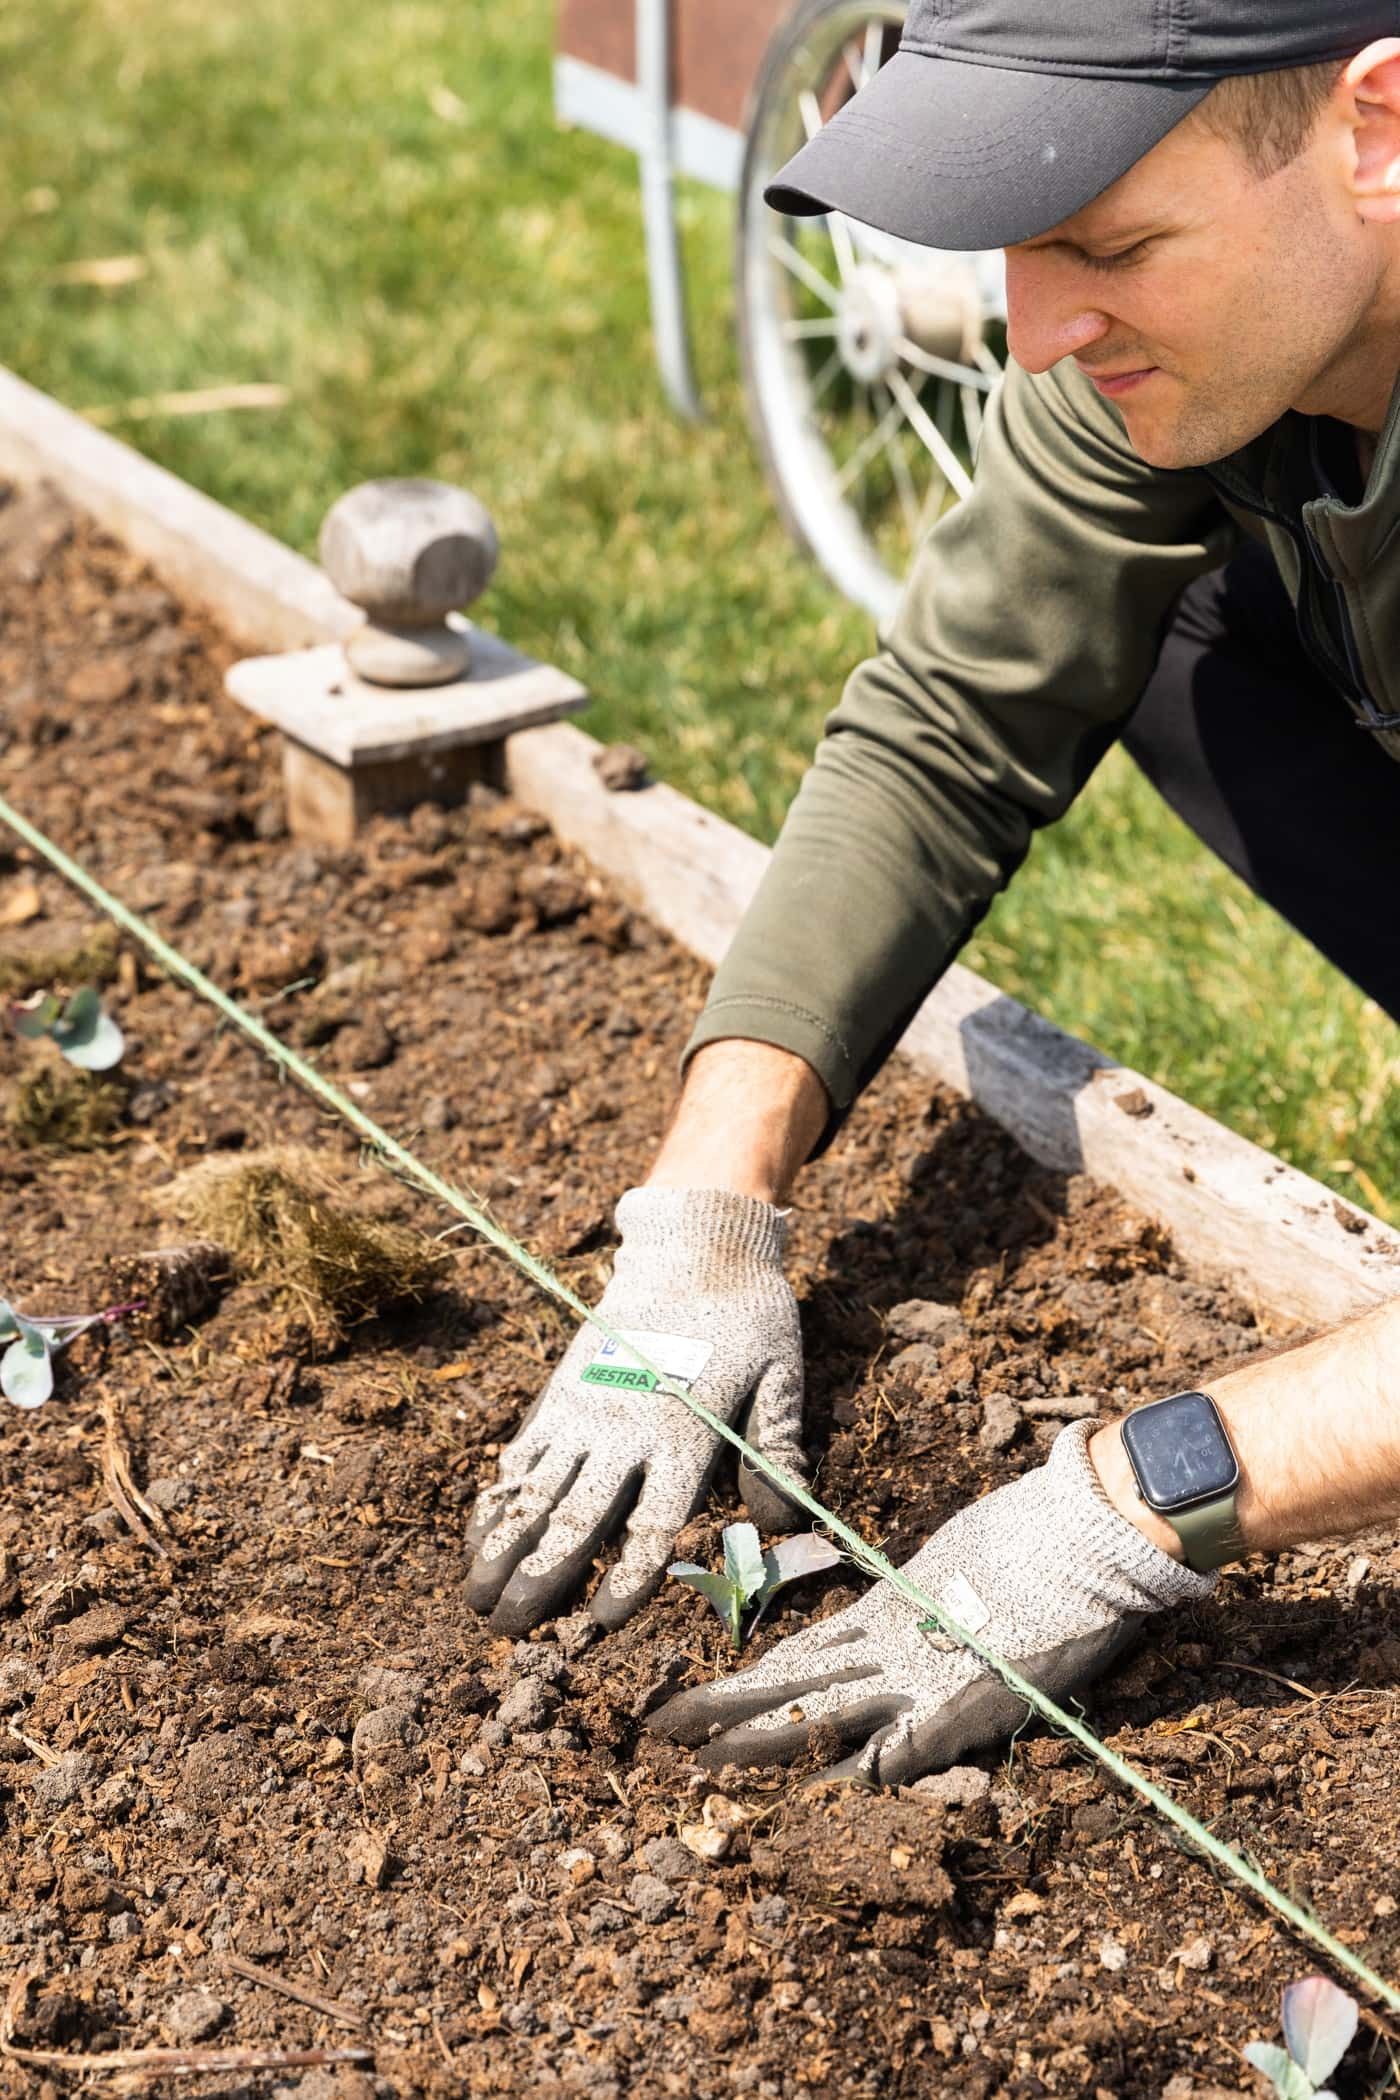 Man planting seed in garden bed with string guiding where to plant small seedling with green grass in background